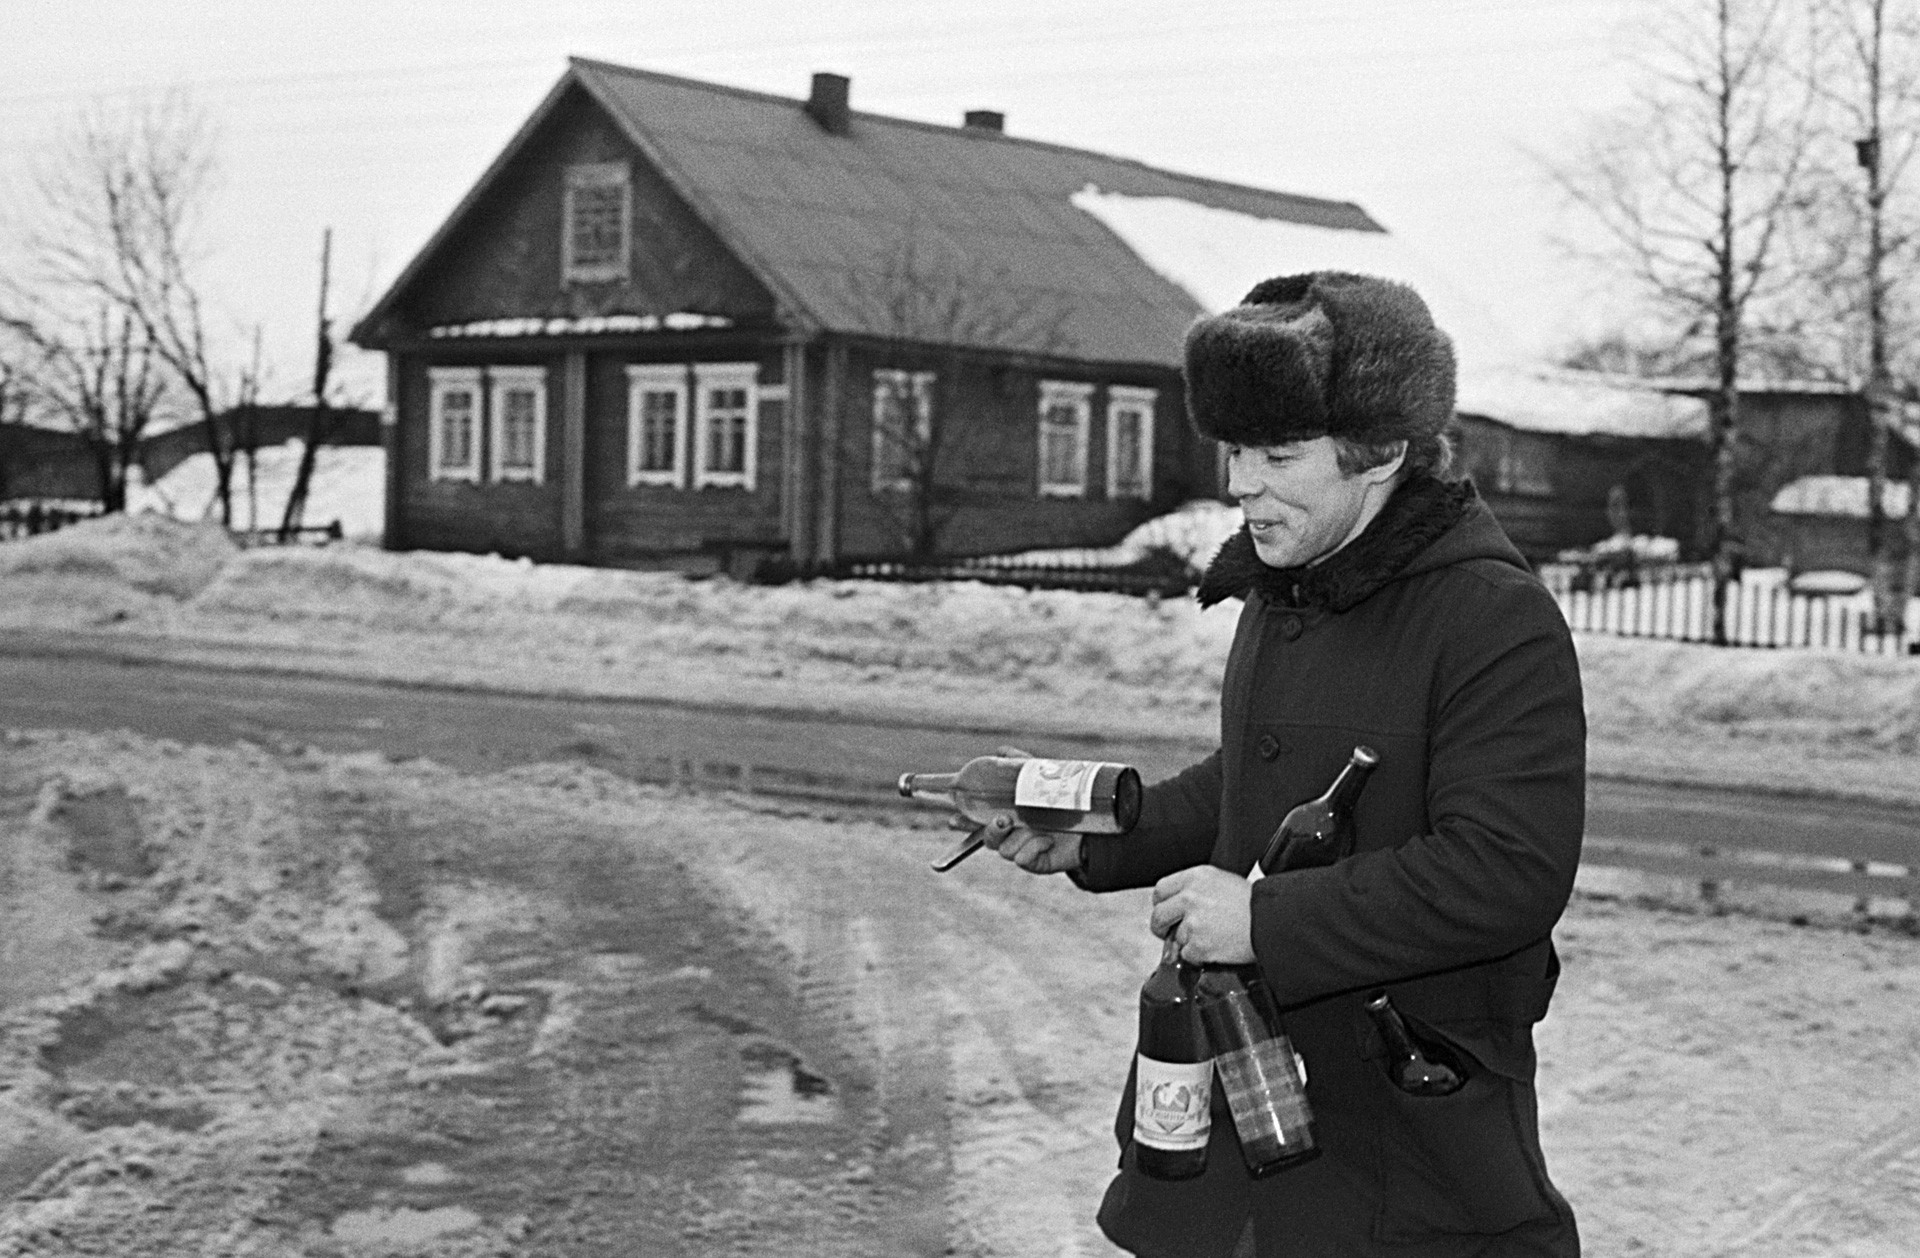 A local holding bottles in a Soviet village, 1990.